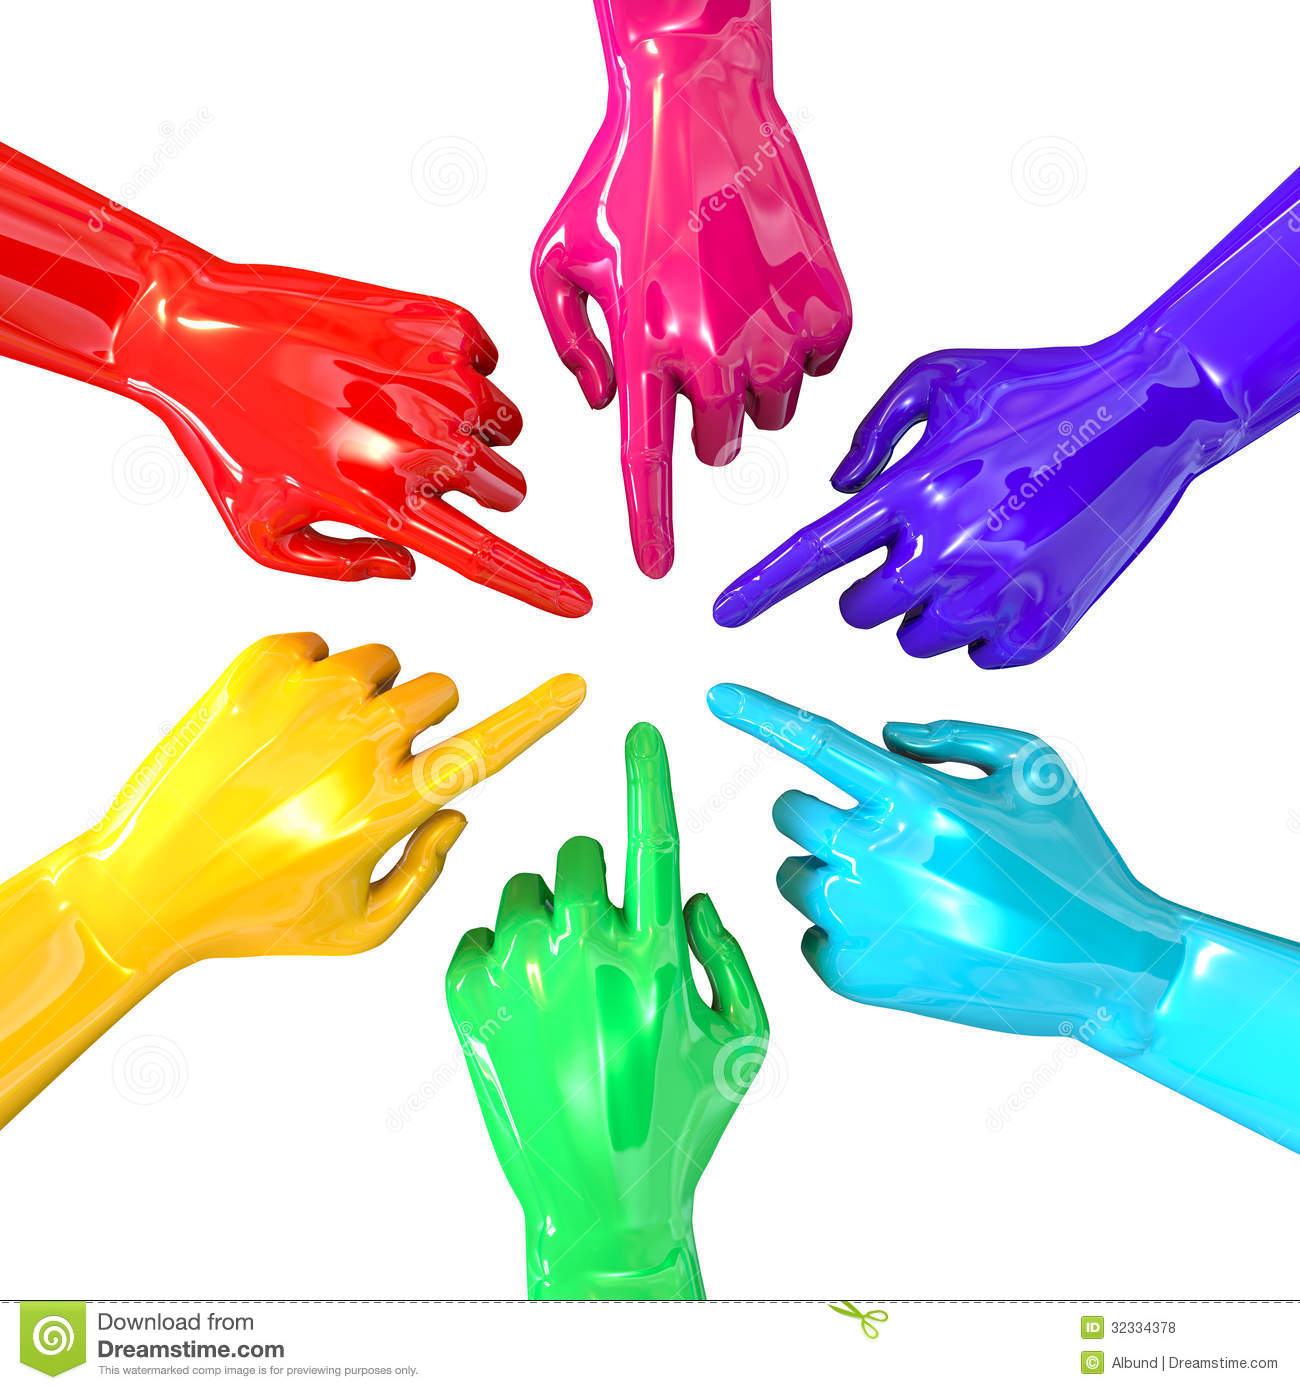 Colorful christmas tree of hands royalty free stock photos image - Hands Colorful Circle Pointing Inward Top Royalty Free